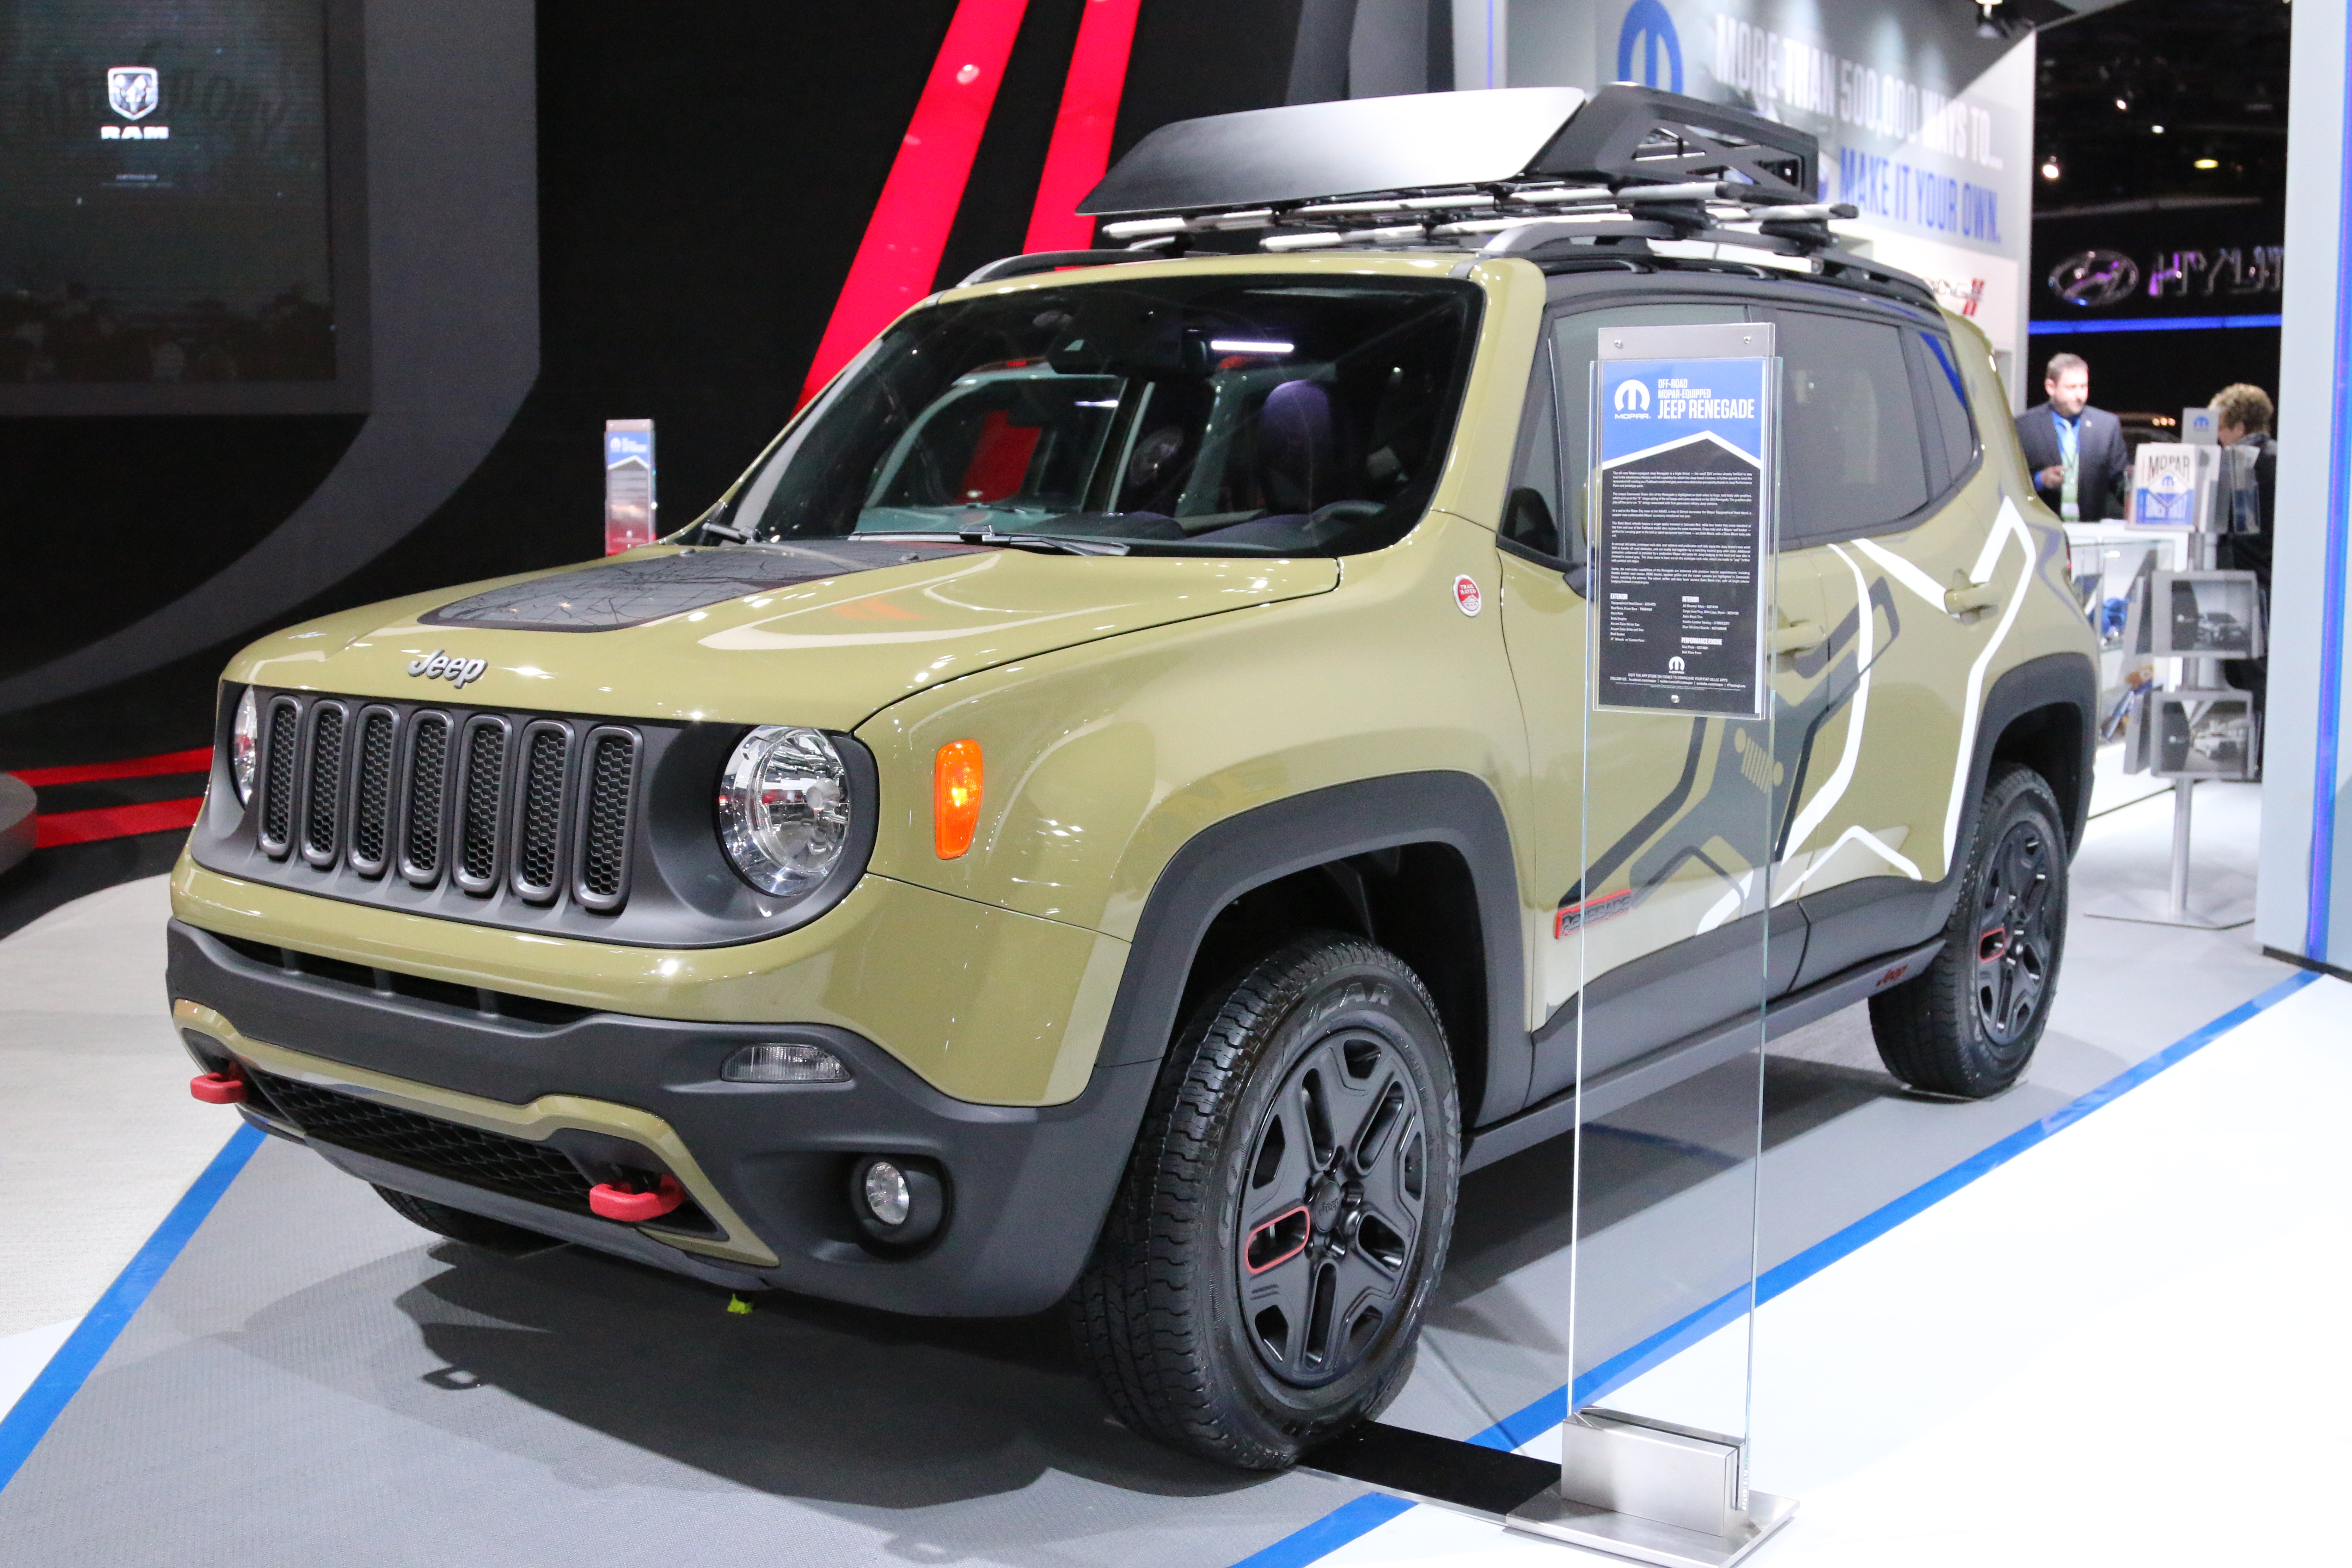 renegade hypergreen a subcompact bud the new wrangler competitor jeep trailhawk wells is photo